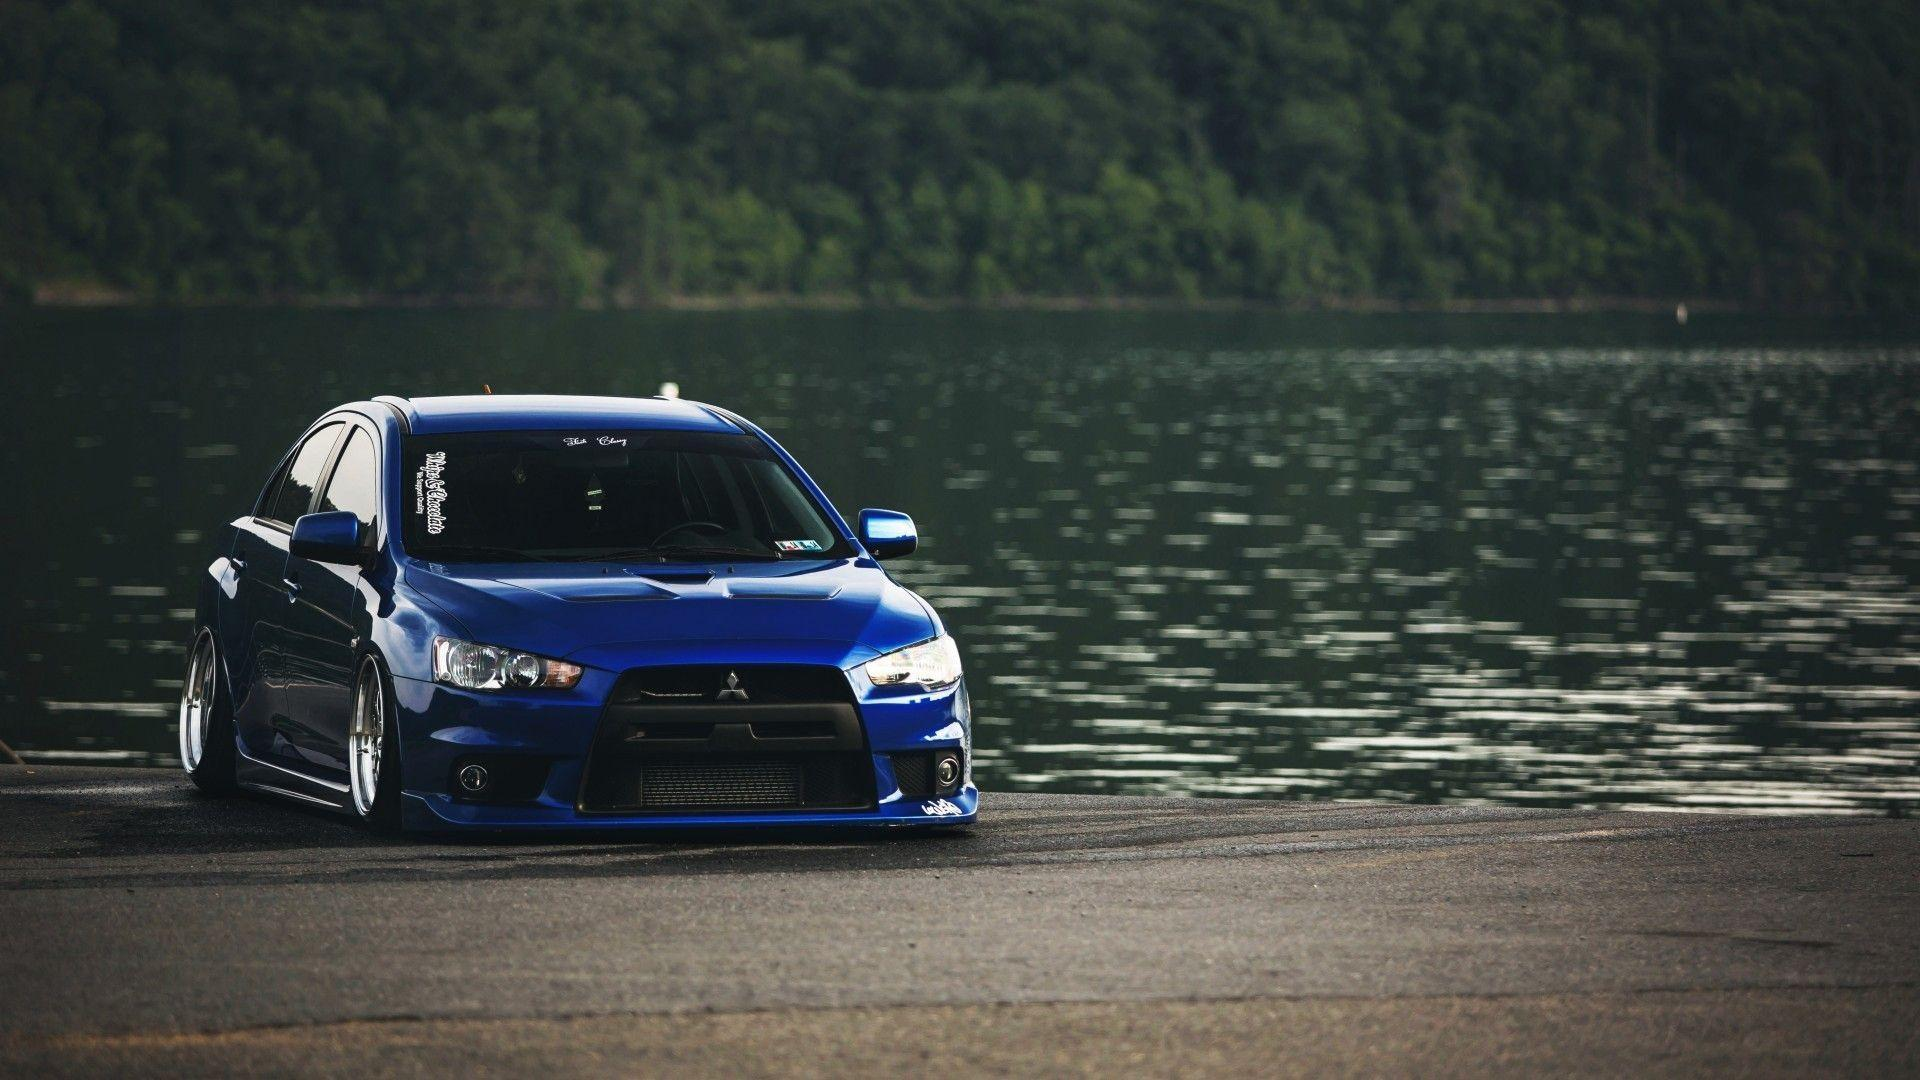 Mitsubishi Lancer Evolution X Wallpapers #